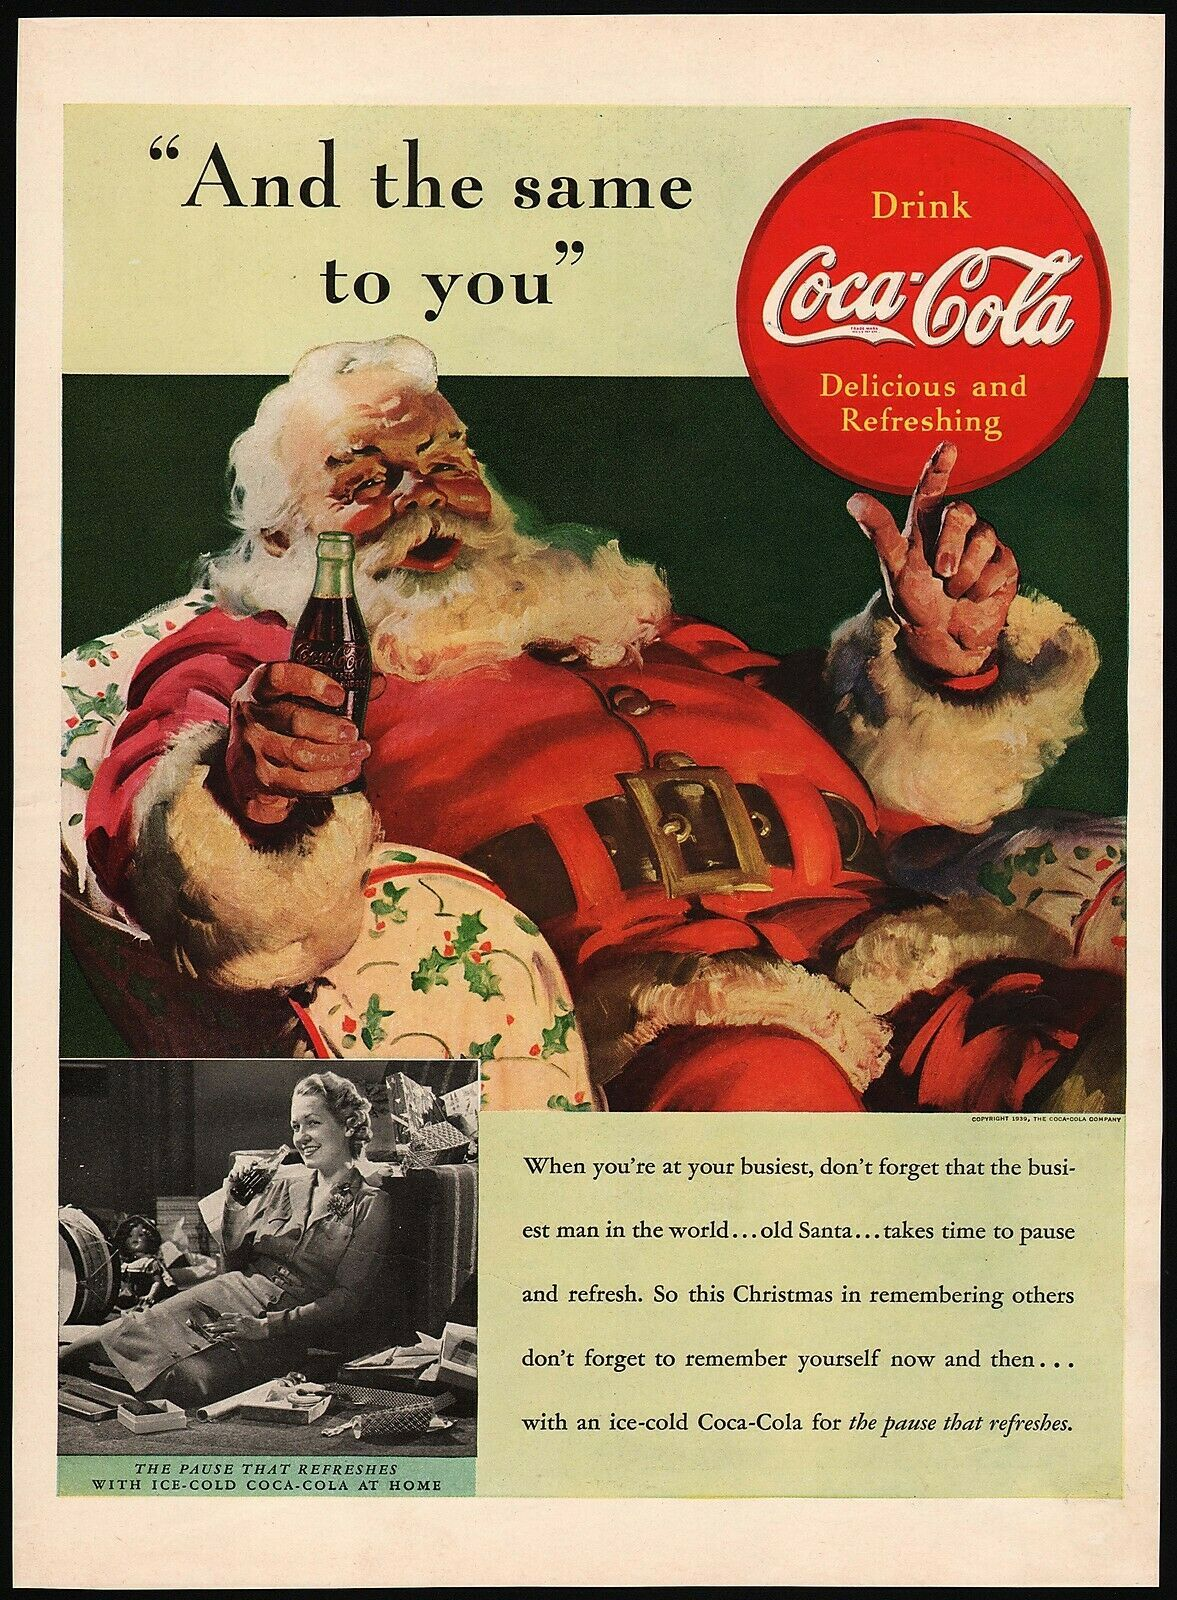 Primary image for Vintage magazine ad COCA COLA from 1939 picturing Santa Claus by Haddon Sundblom